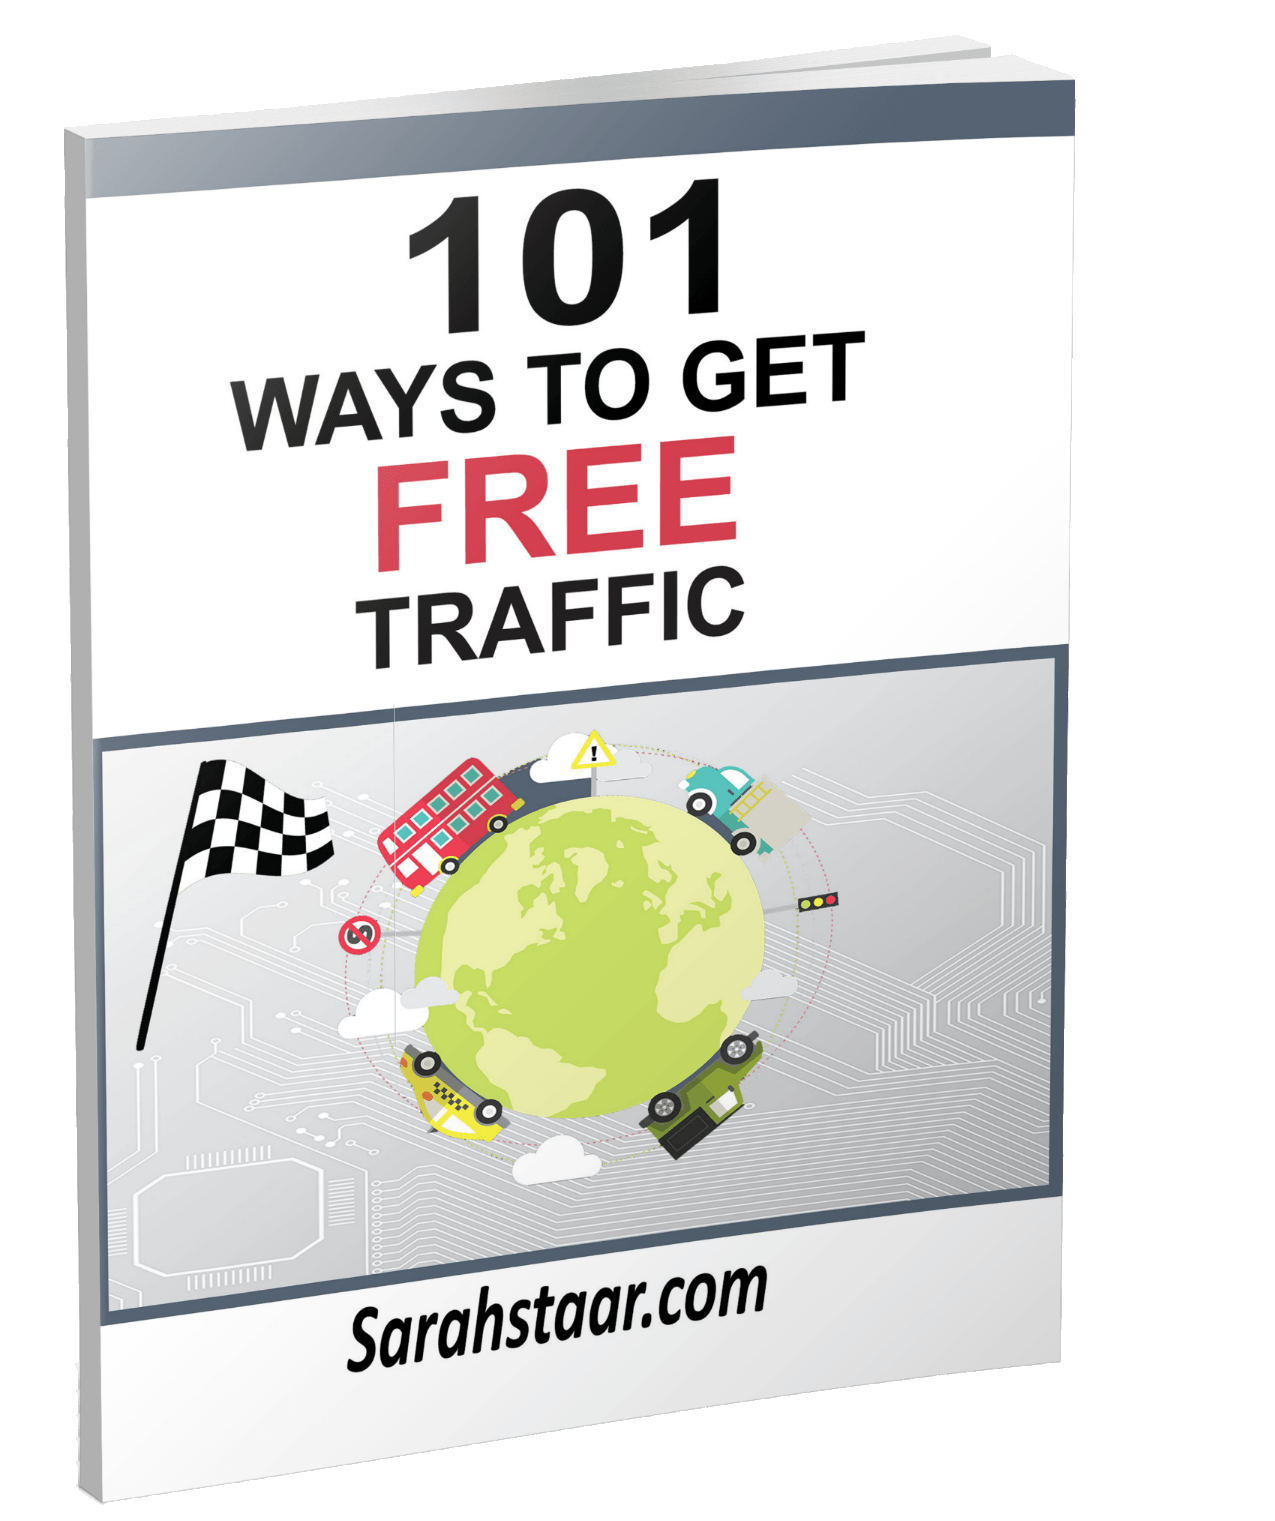 101 ways to get free traffic